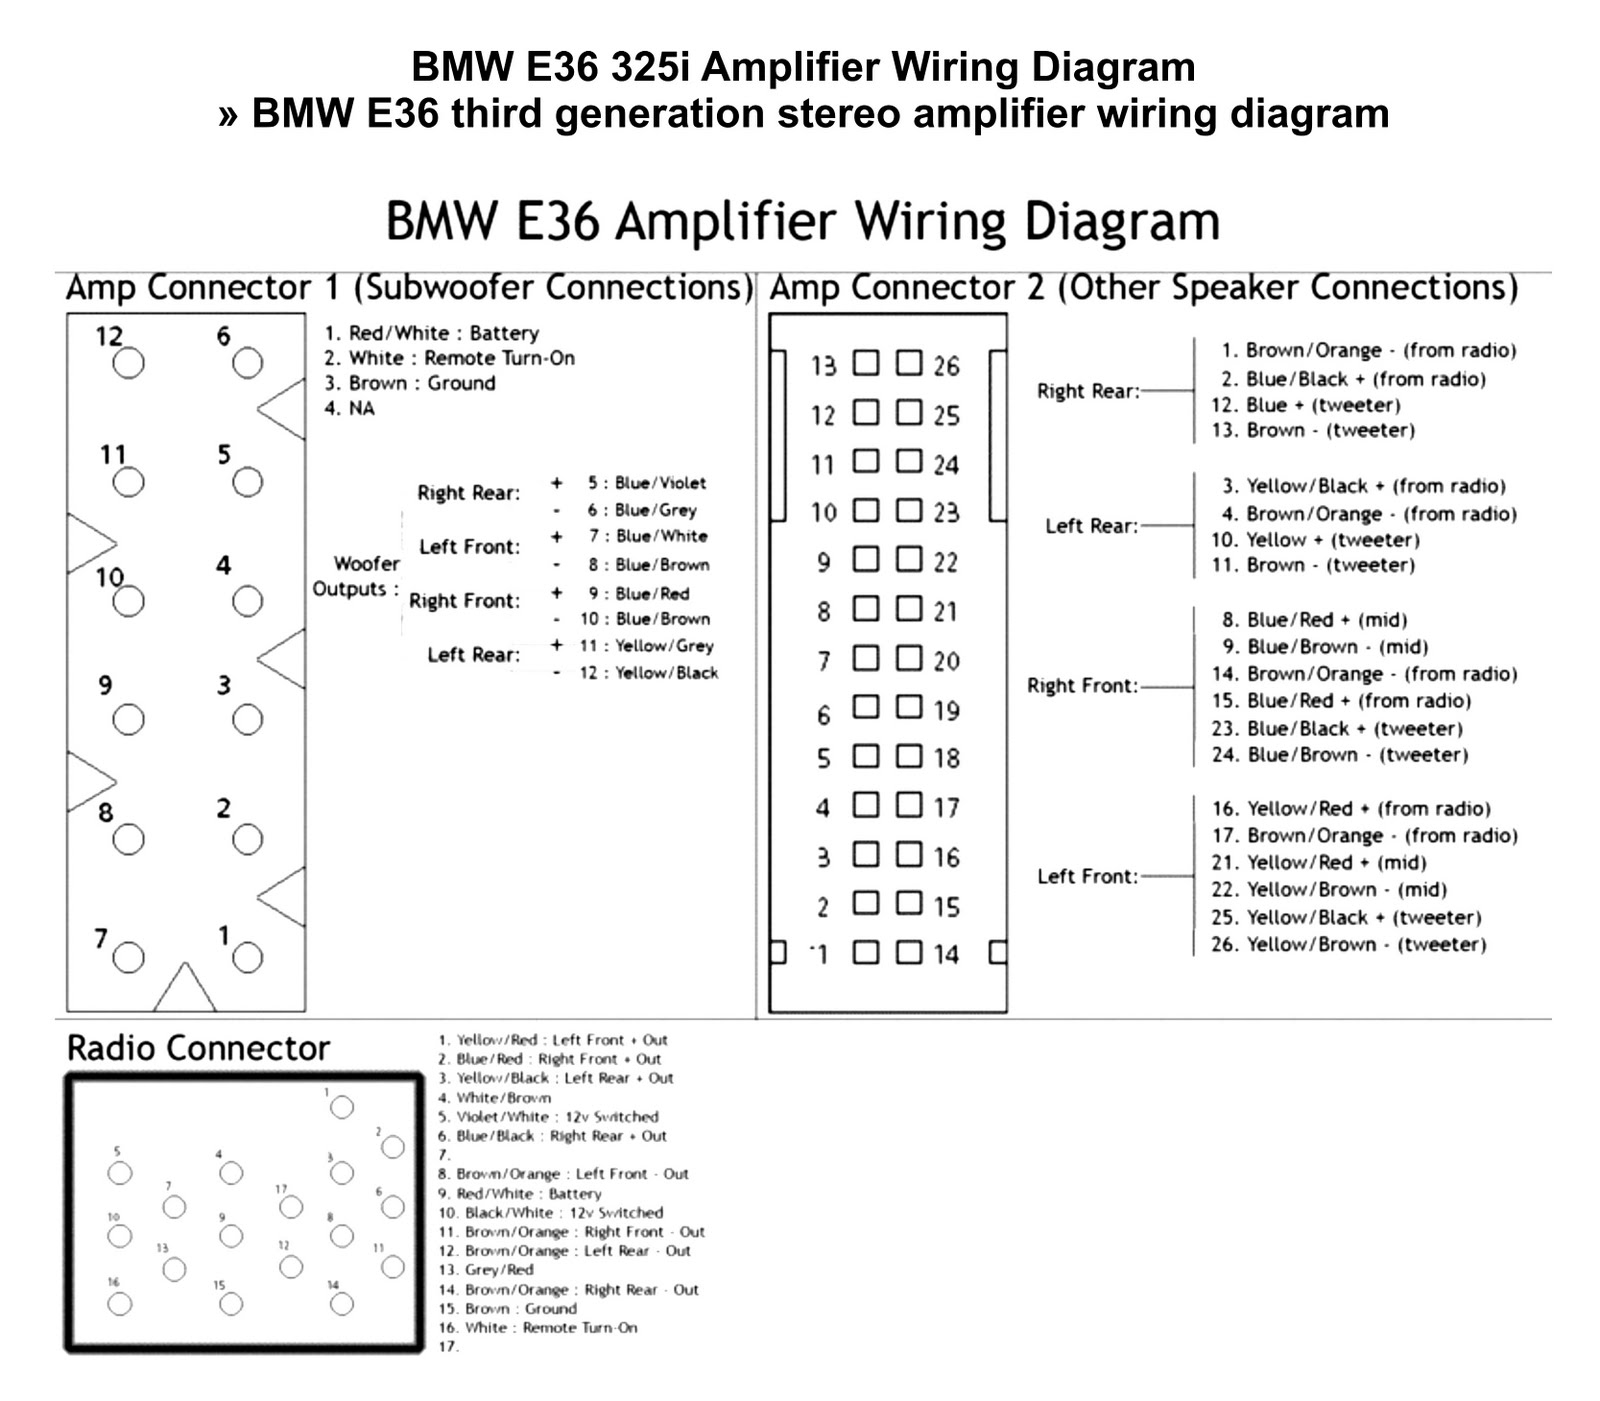 2003 bmw z4 wiring diagram 24c6532 bmw z4 stereo wiring diagram wiring resources  24c6532 bmw z4 stereo wiring diagram